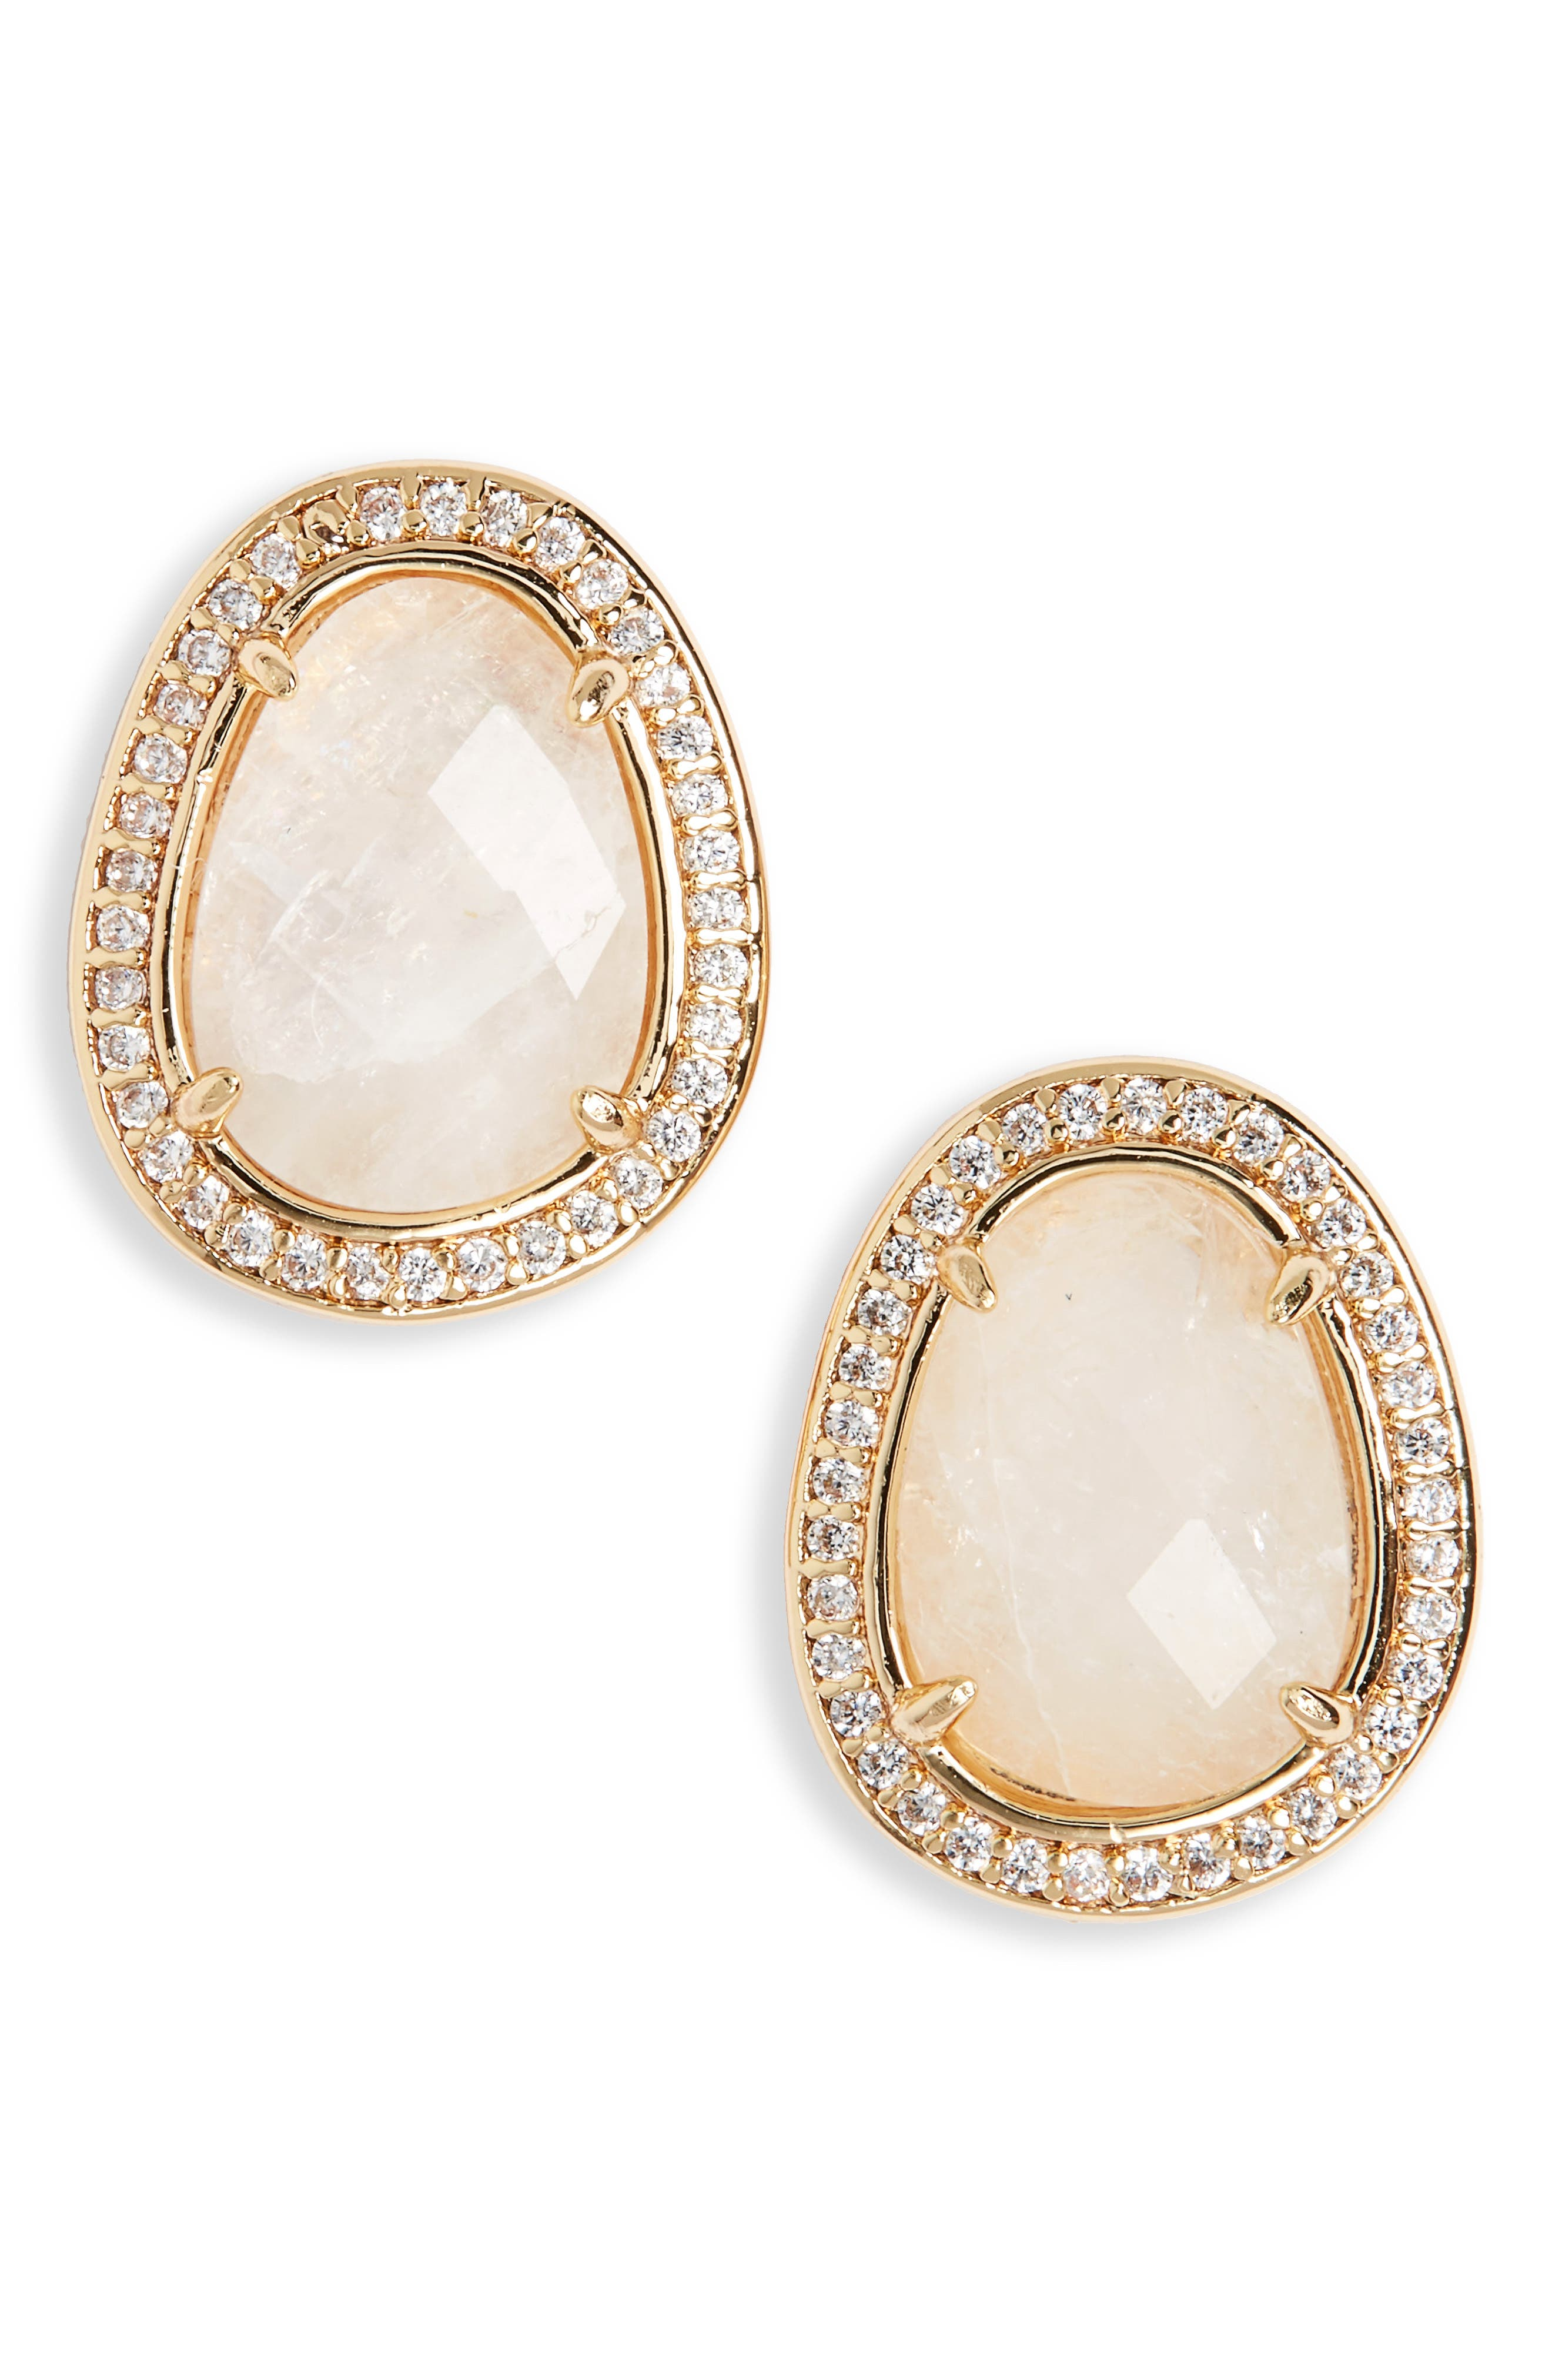 MELANIE AULD Semiprecious Stone Stud Earrings